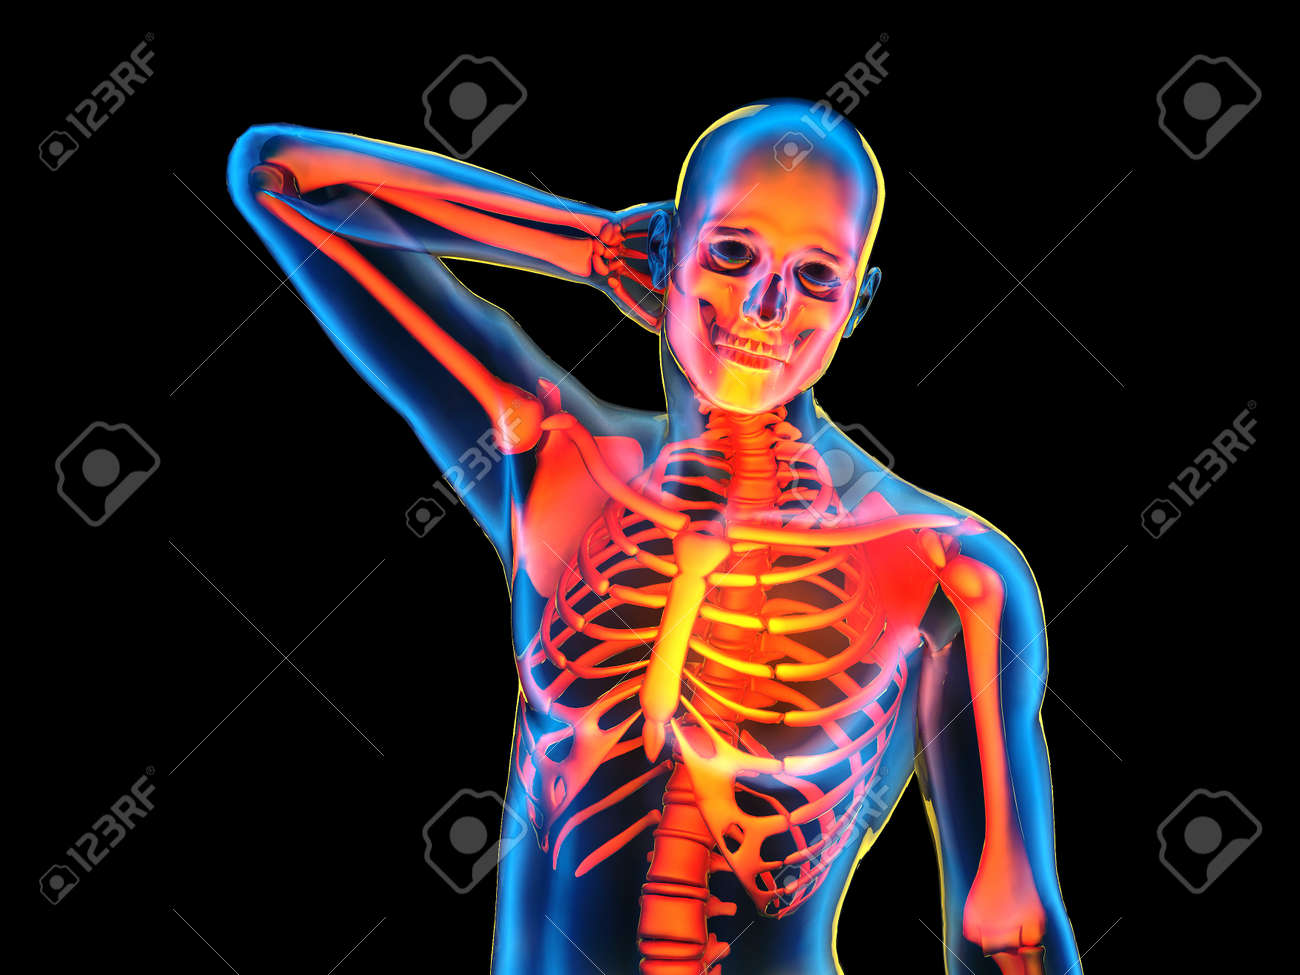 Graphical Representation Of The Human Skeleton3d Render Stock